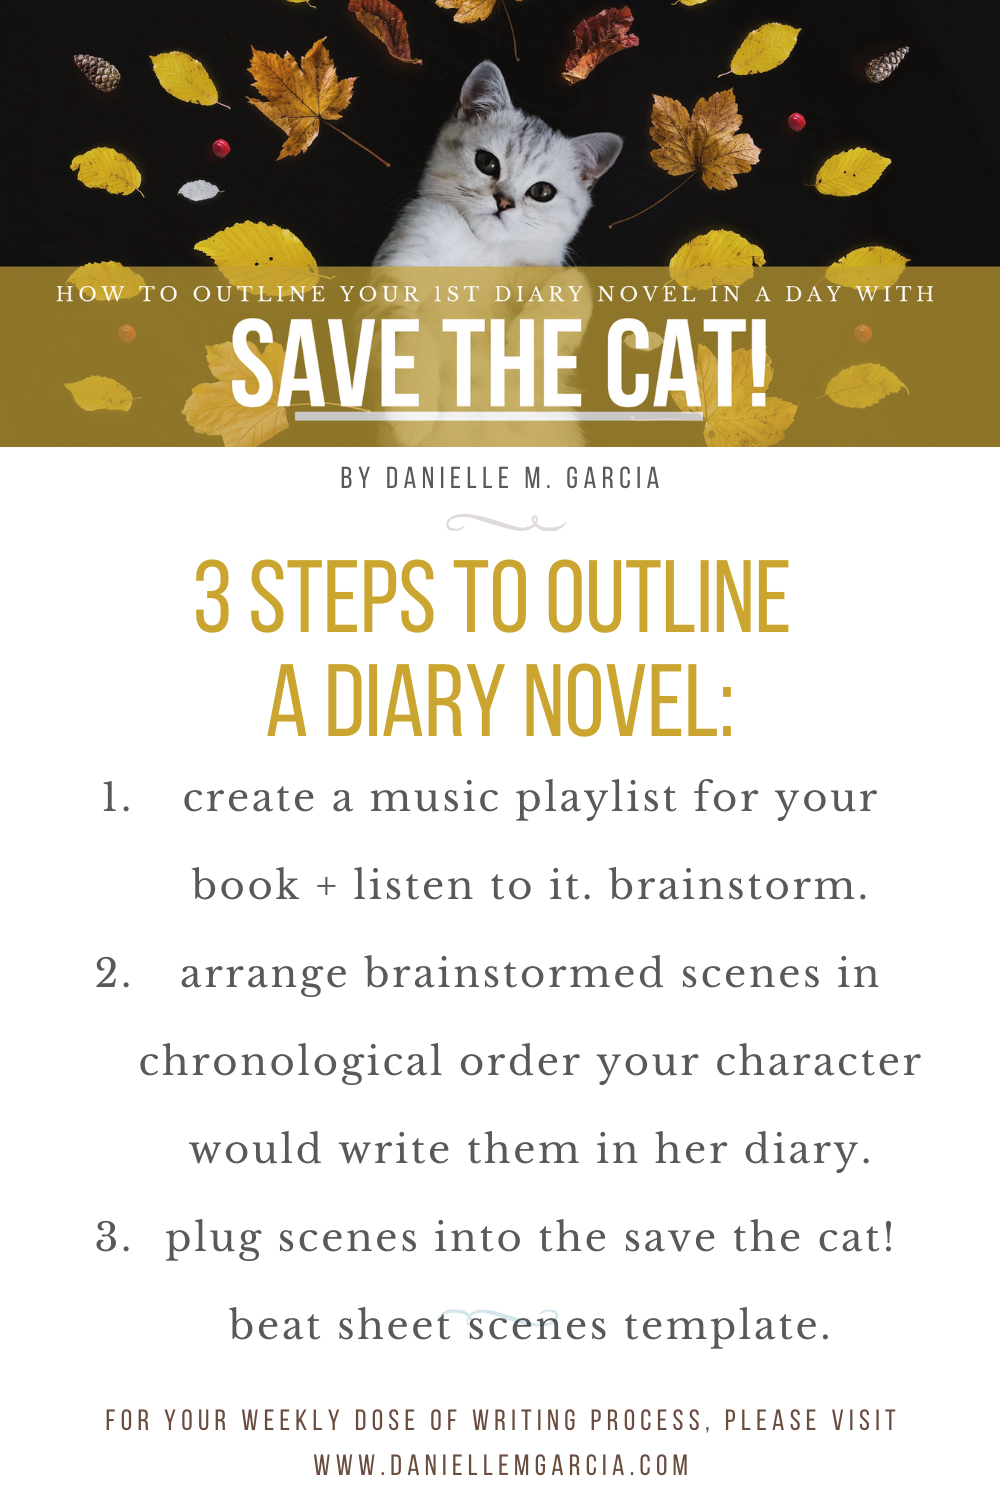 3 steps to outline a diary novel with save the cat!